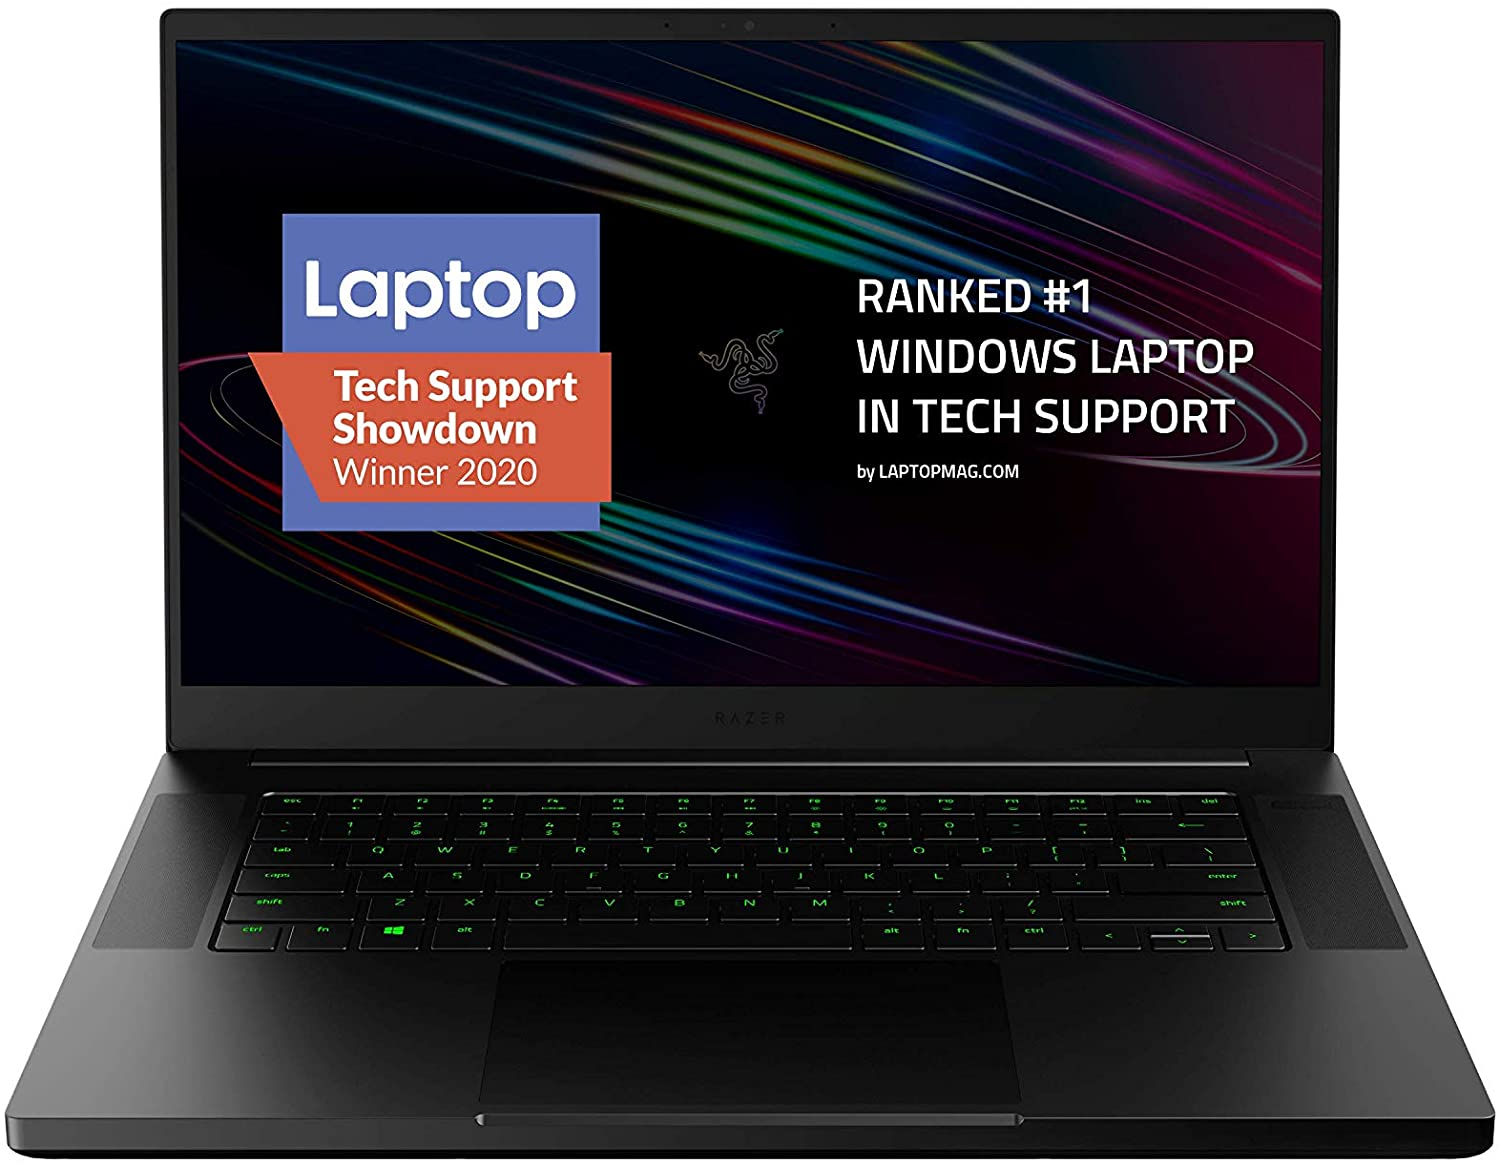 "Razer Blade 15 Base Gaming Laptop 2020: Intel Core i7-10750H 6-Core, NVIDIA GeForce GTX 1660 Ti, 15.6"" FHD 1080p 144Hz, 16GB RAM, 256GB SSD, CNC Aluminum, Chroma RGB Lighting, Thunderbolt 3, Black"